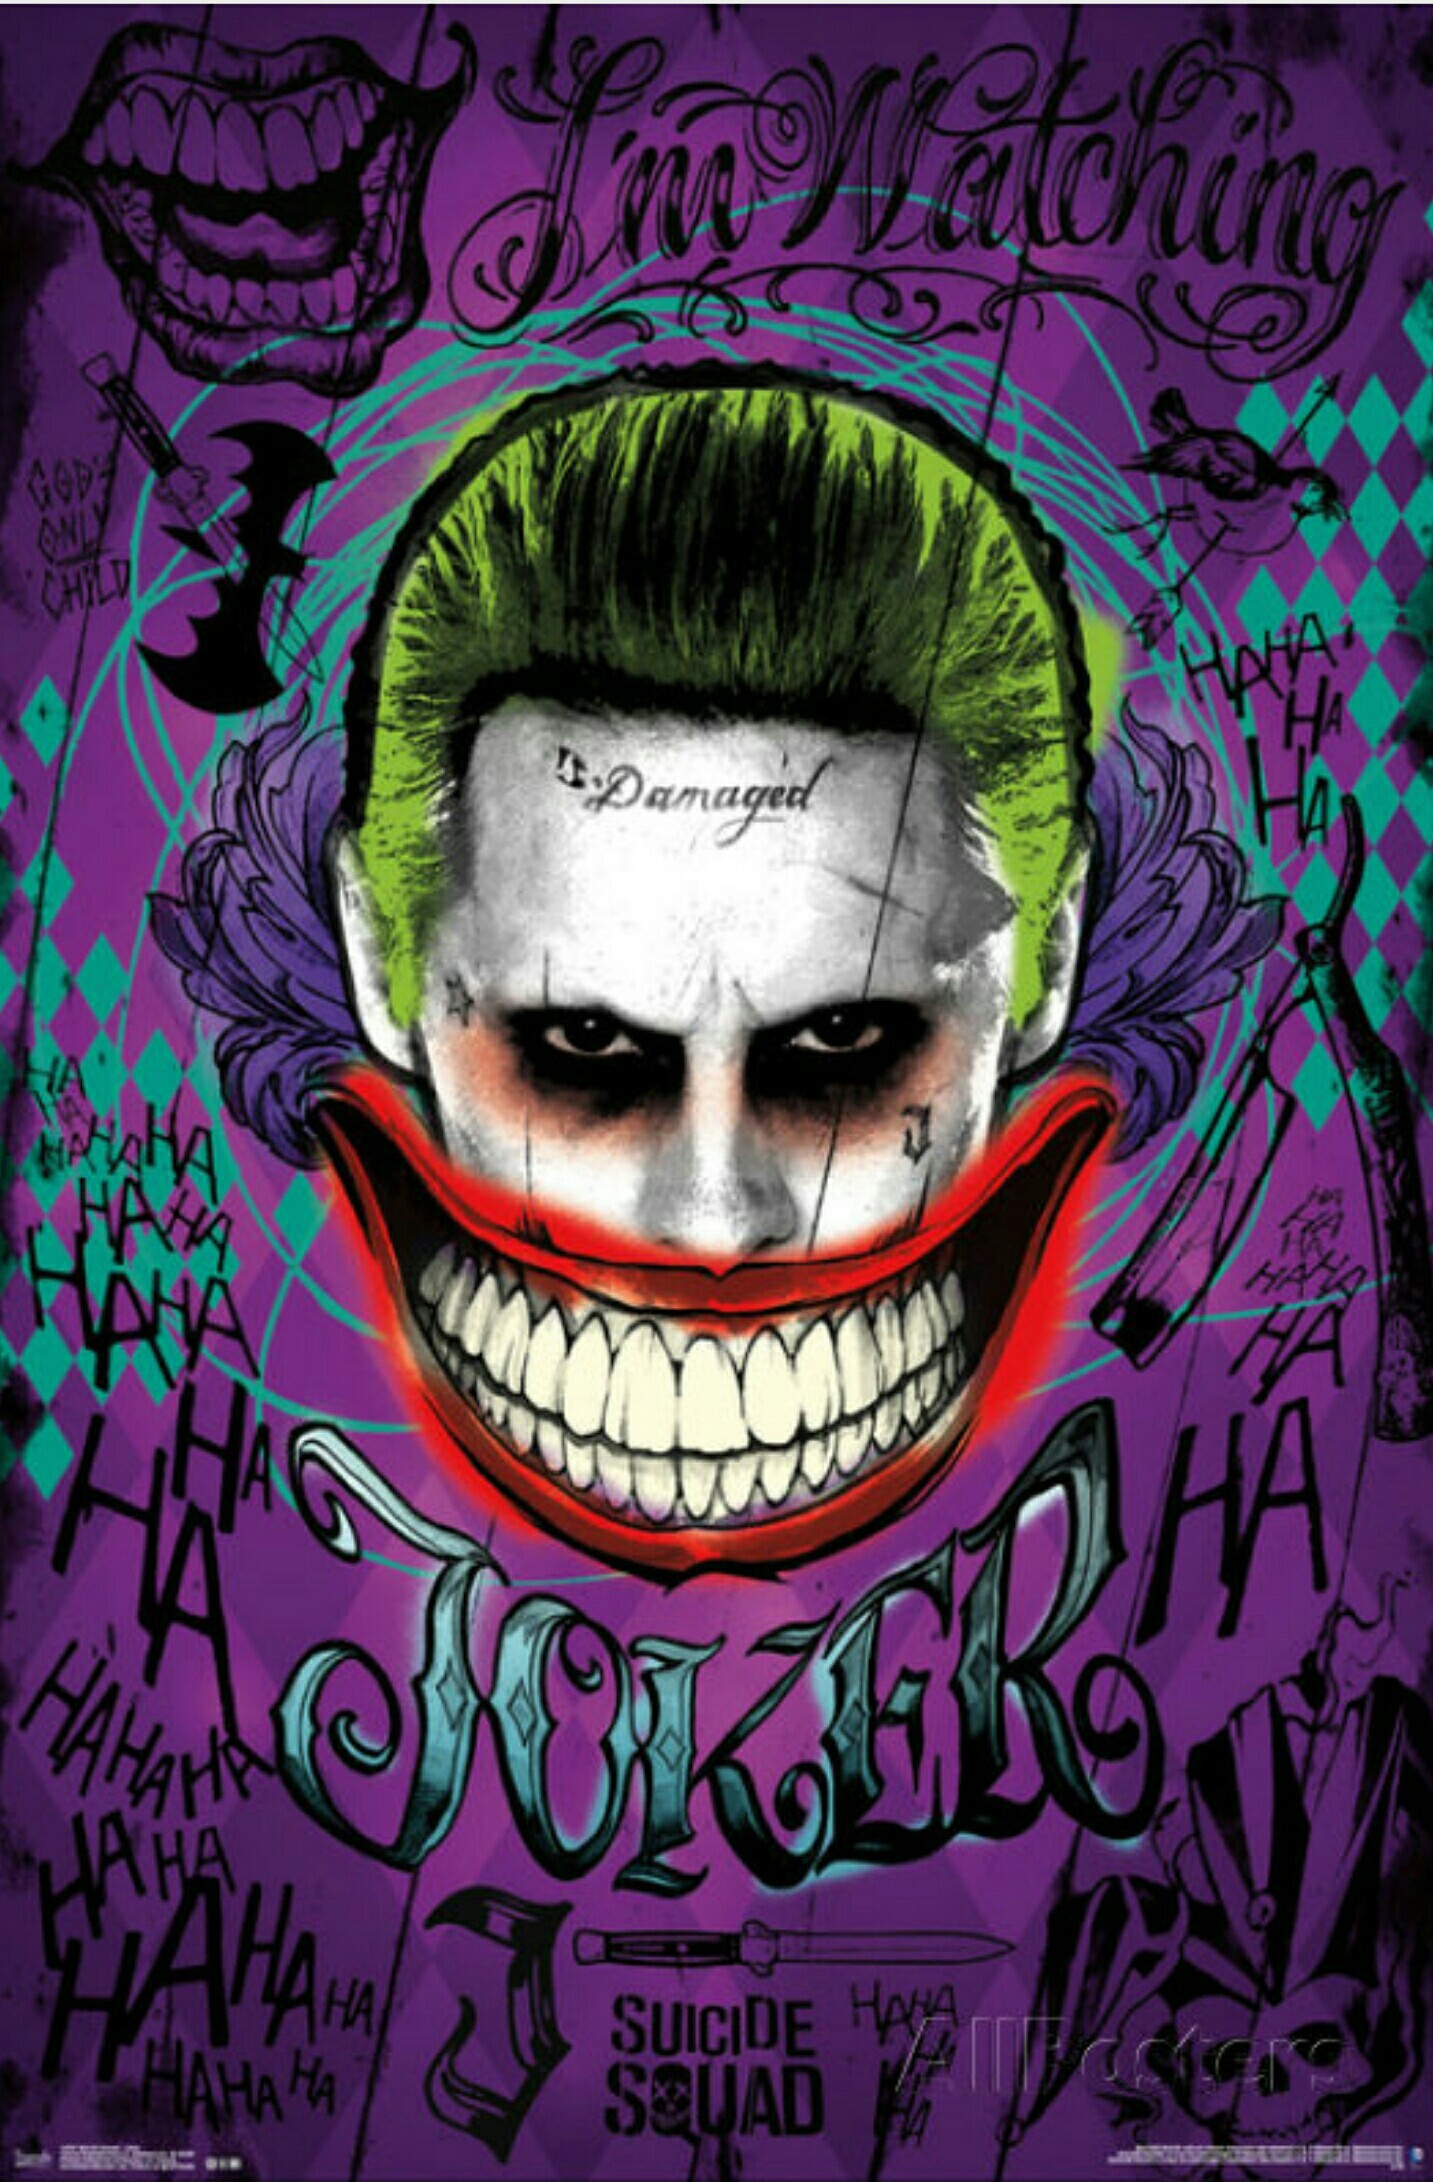 Joker Wallpaper Suicide Squad Posted By Ryan Anderson